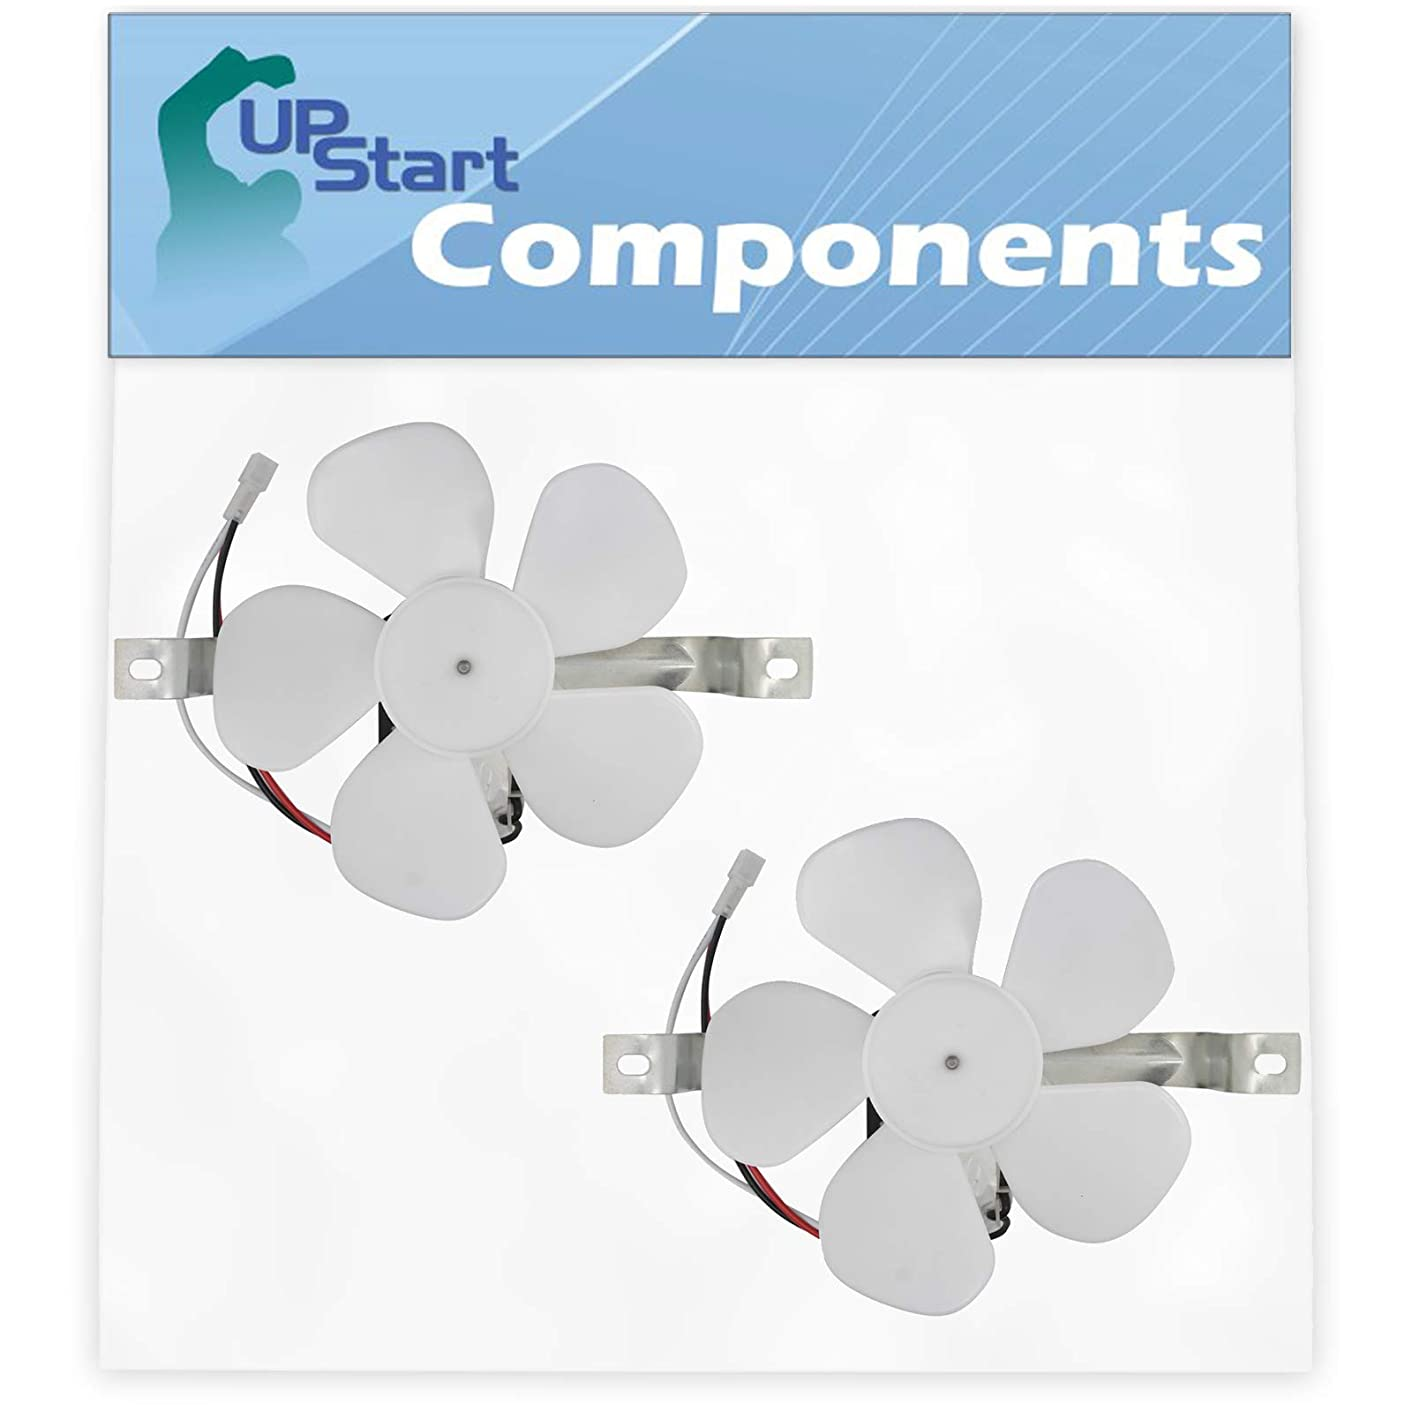 2-Pack 97012248 Range Hood Fan Motor Replacement for Kenmore/Sears 23351749590 Range Hood - Compatible with S97012248 Motor Fan - UpStart Components Brand